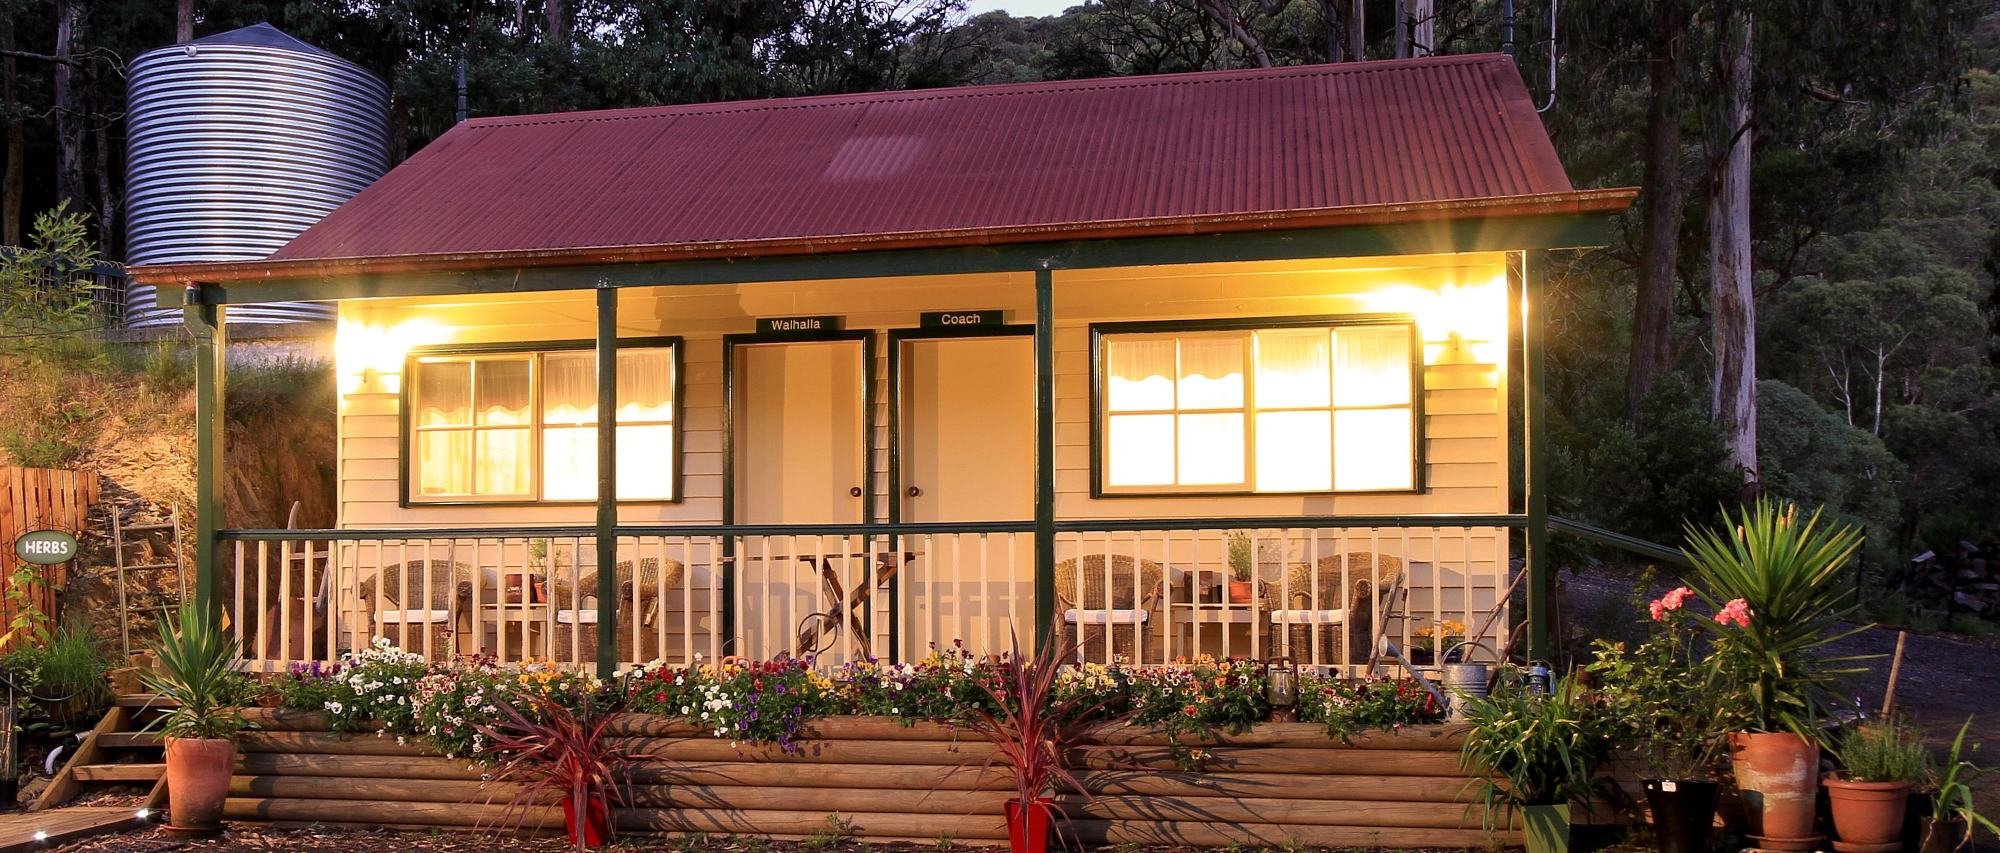 walhalla accommodation bed and breakfast